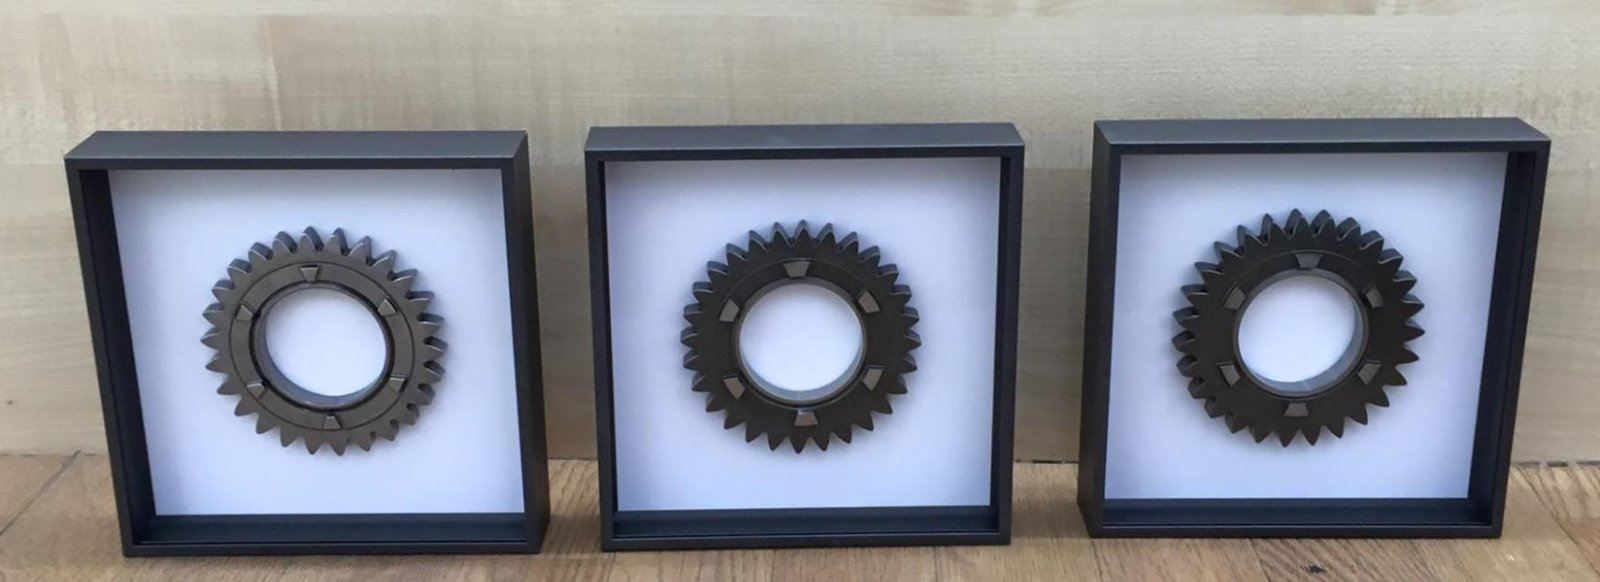 gears from a formula 1 car